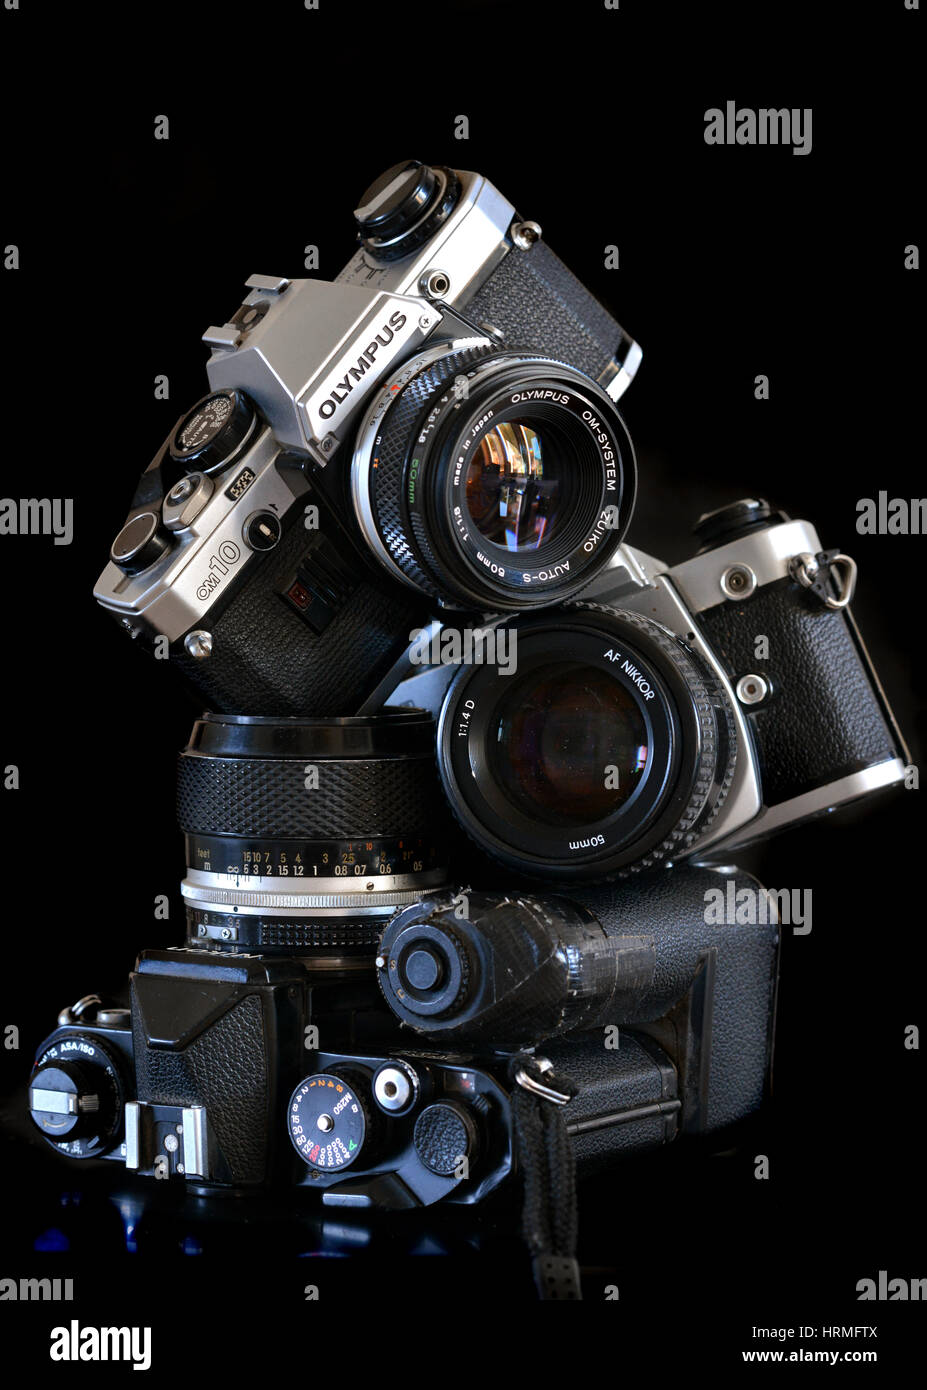 Pile of old retro film cameras - Nikon, Olympus - Stock Image